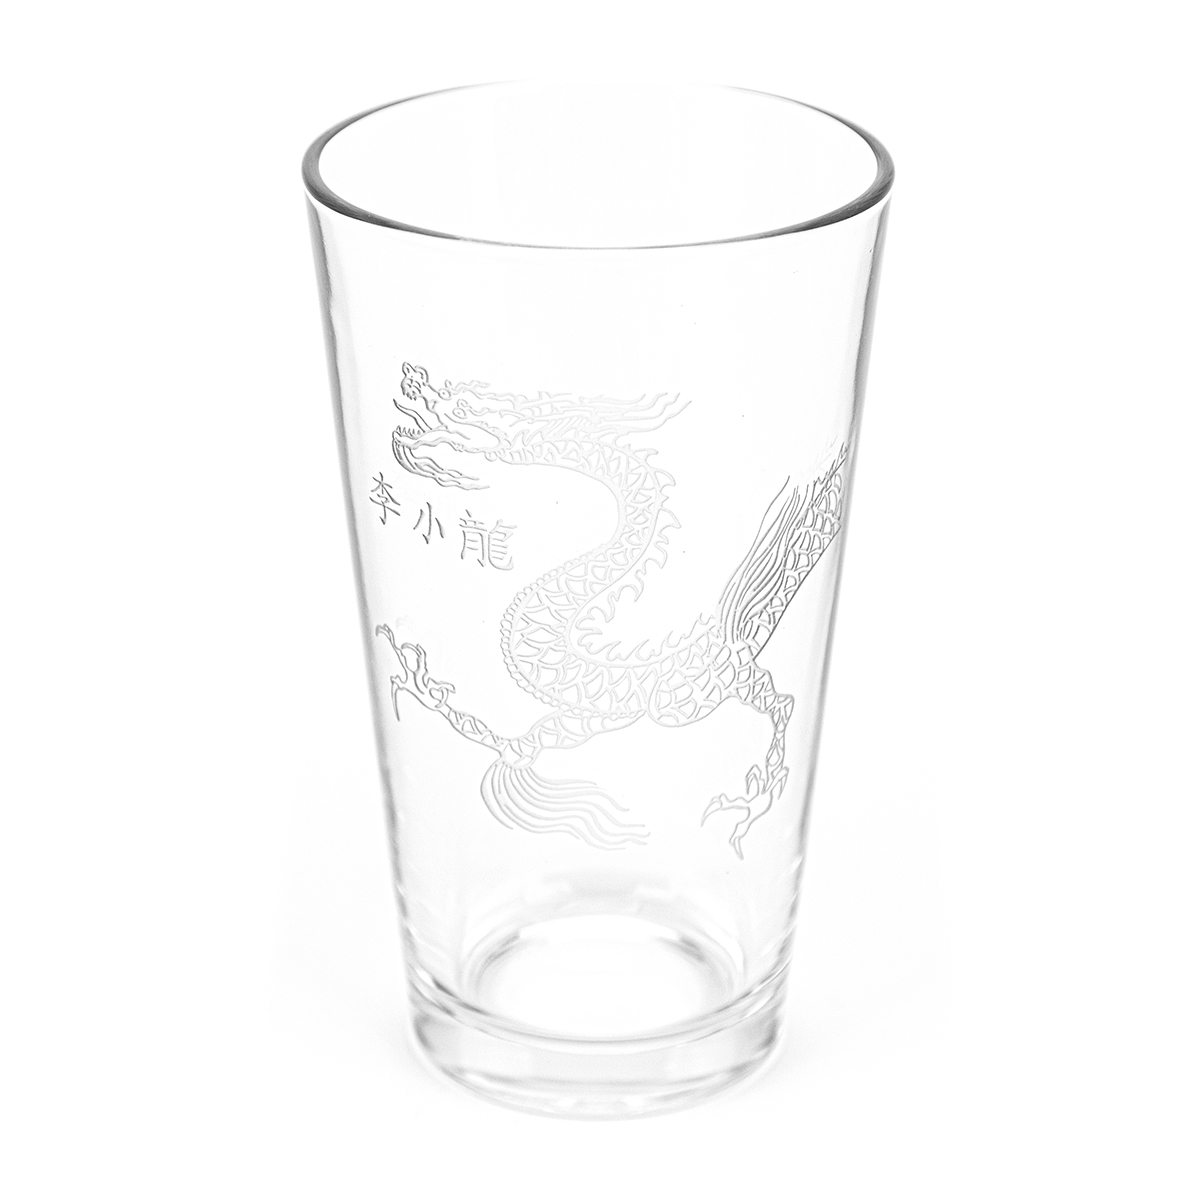 Lee Little Dragon 16oz. Etched Glass